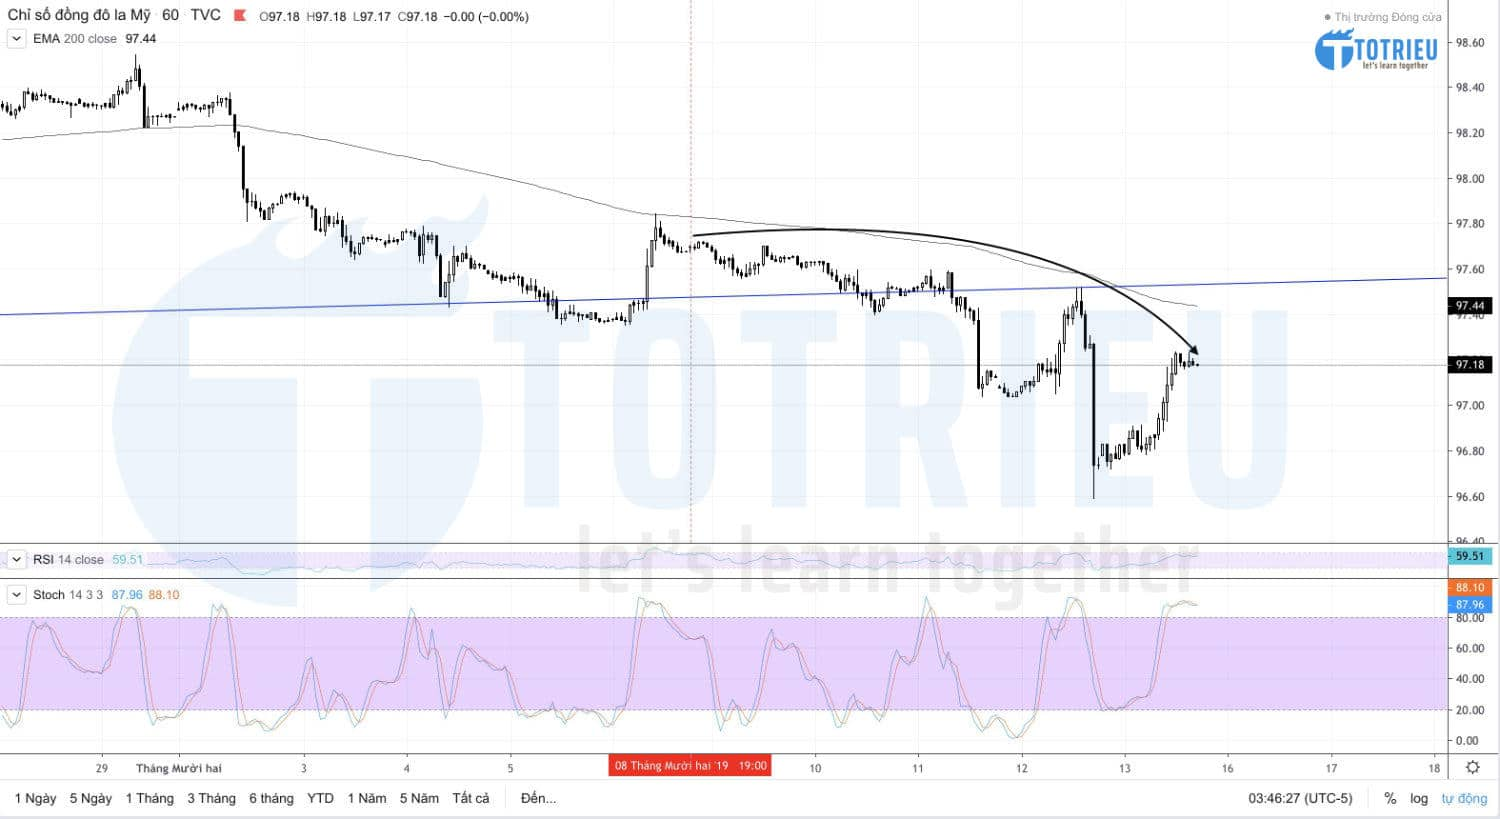 DXY - US Dollar Index Recap tuần 50/2019